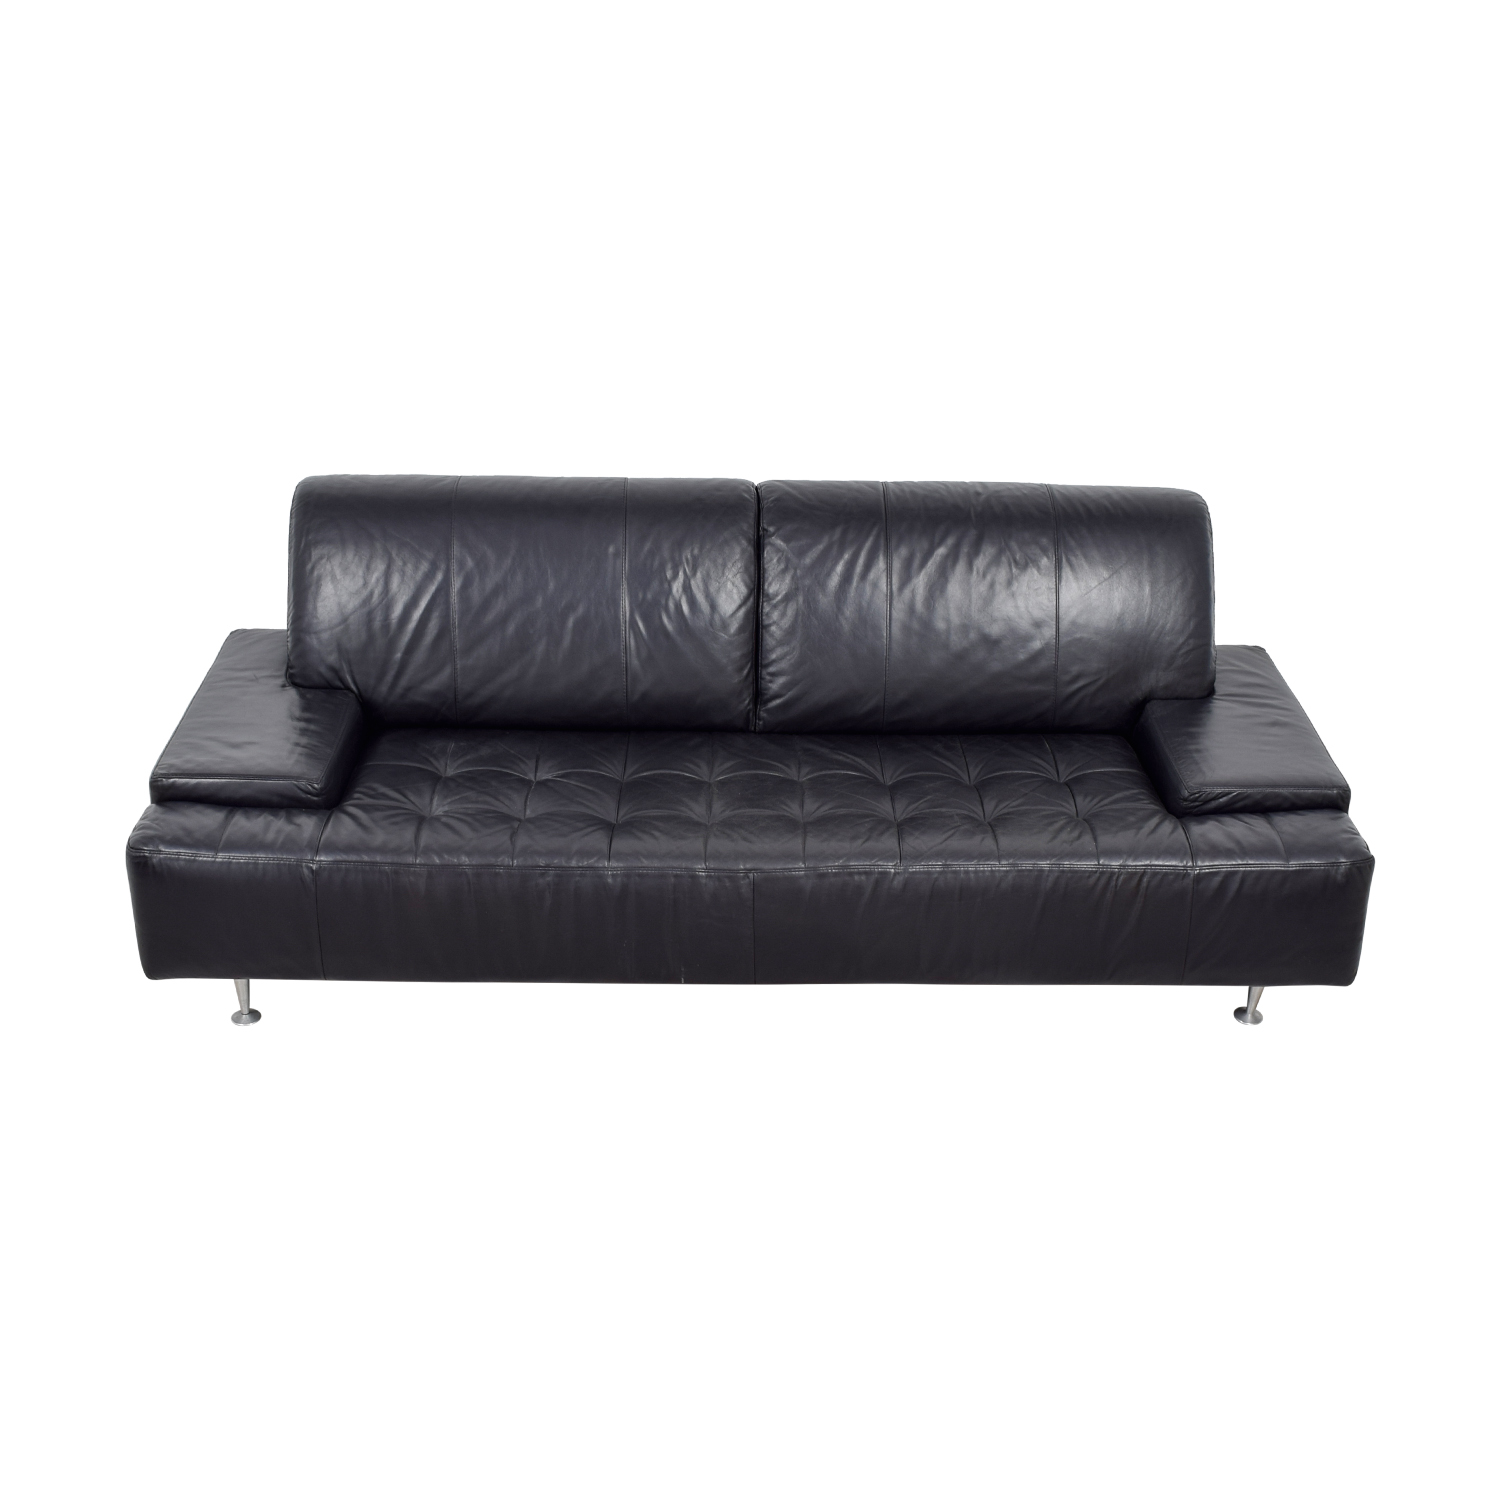 buy Nicoletti Nicoletti Black Leather Tufted Couch online